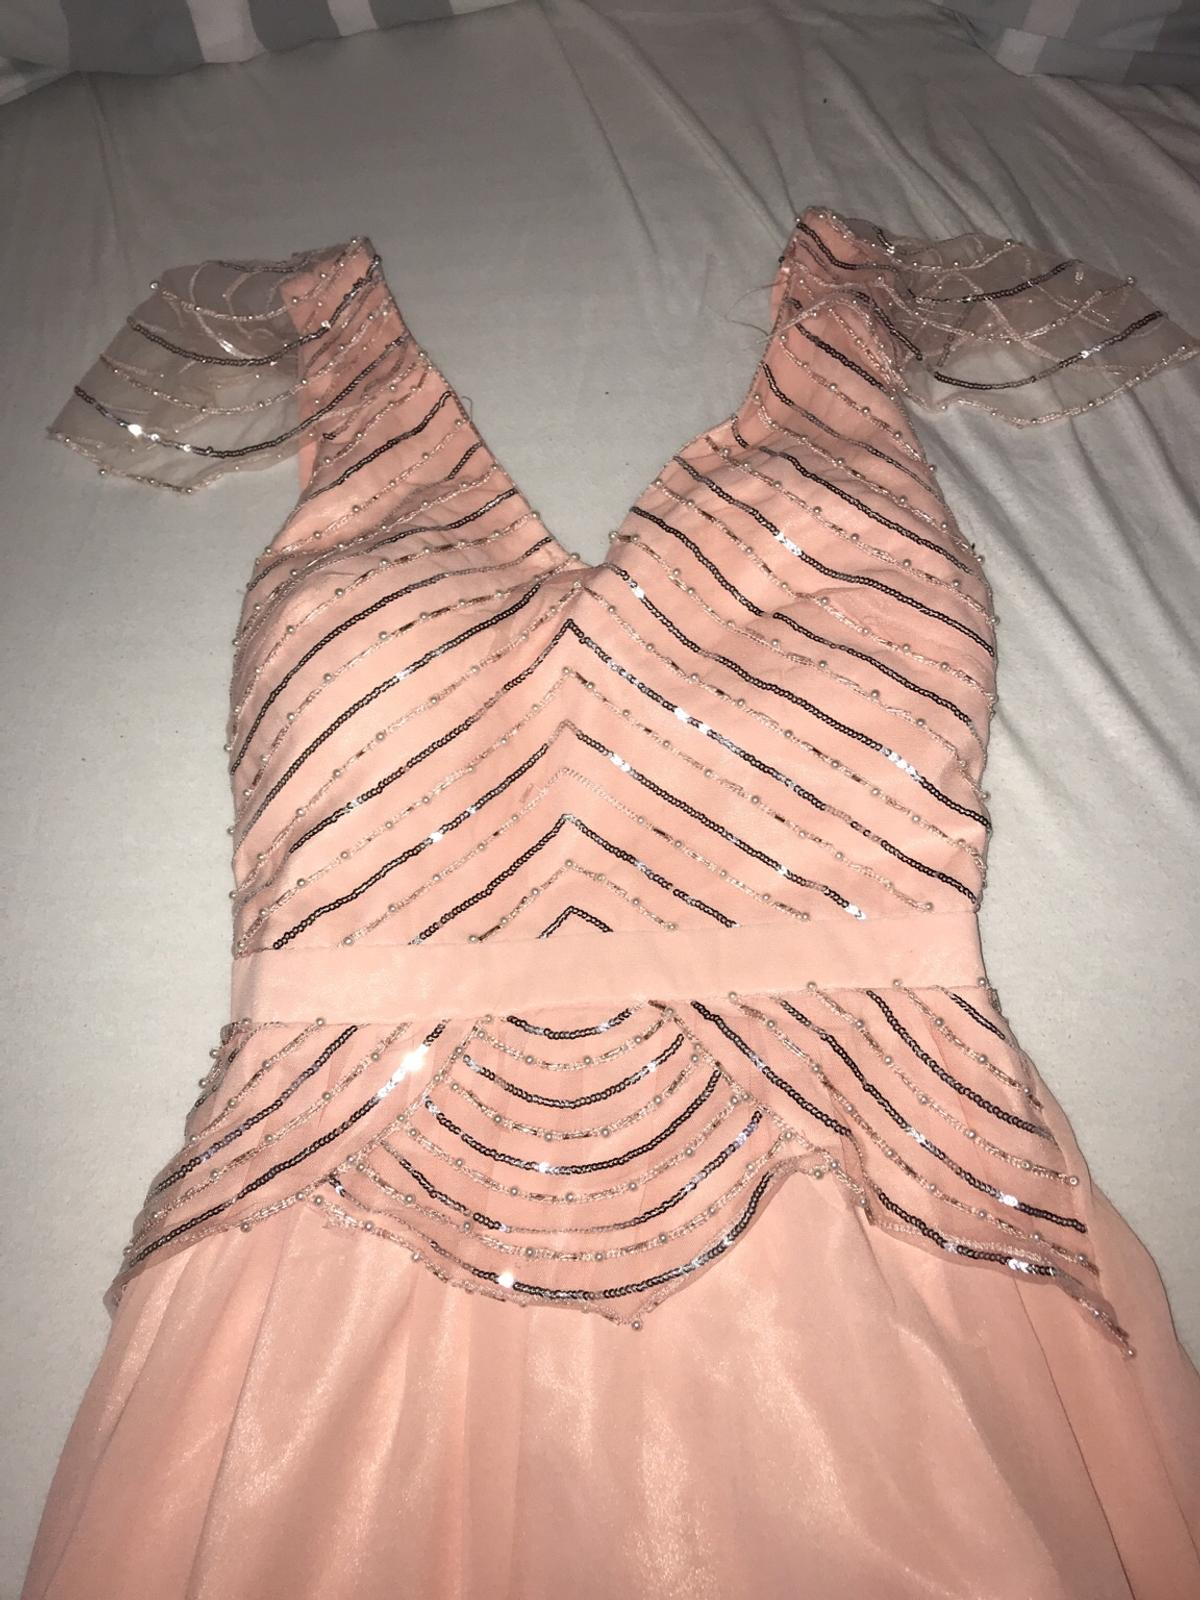 langes kleid rosa in 77833 ottersweier for €30.00 for sale